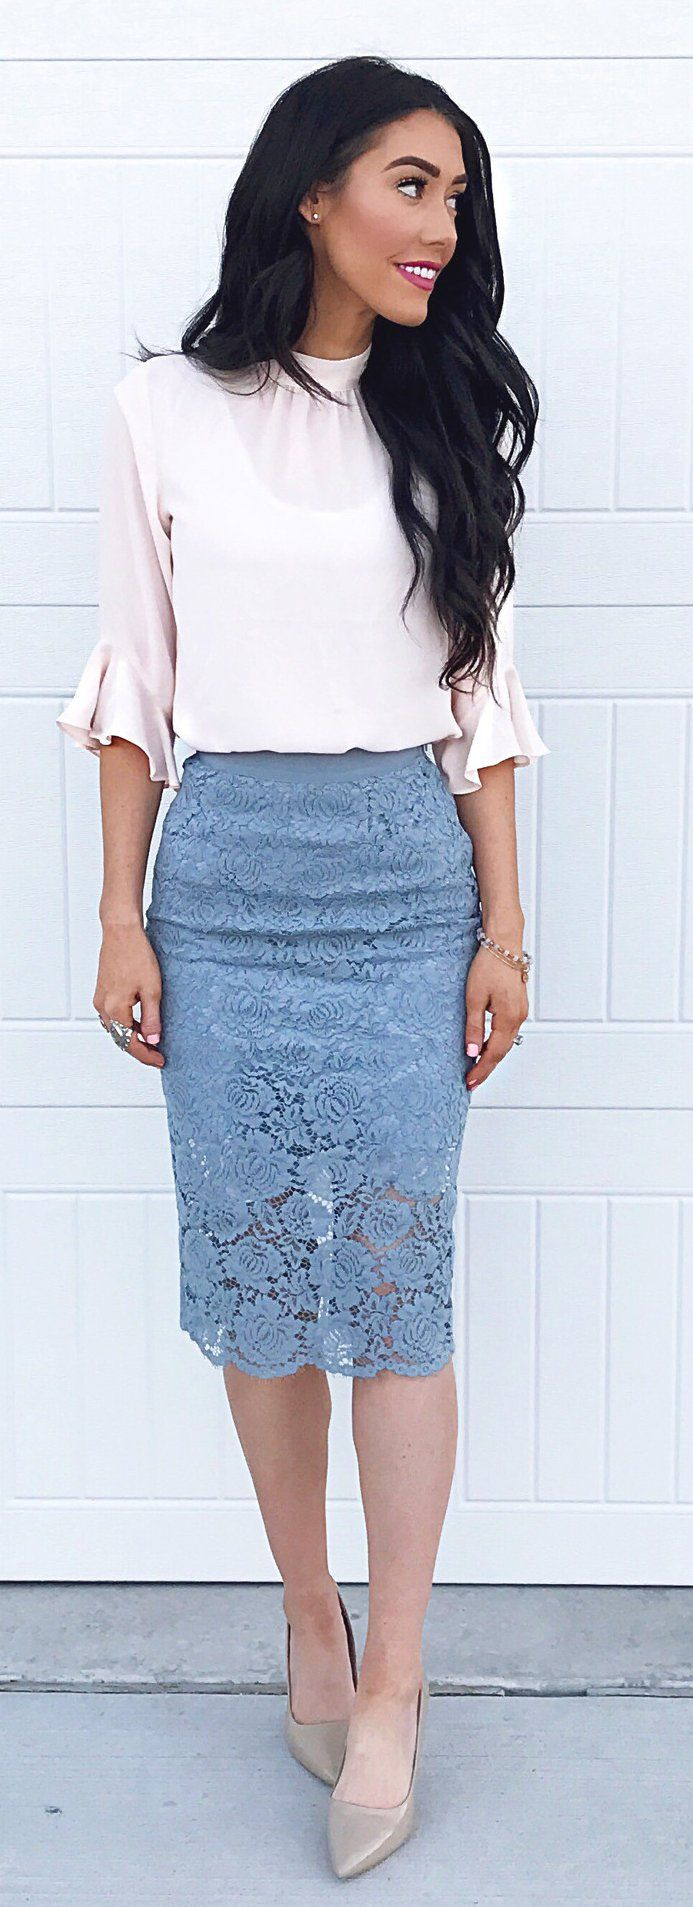 5693161a1903b spring  outfits White Blouse   Grey Lace Skirt   Grey Pumps